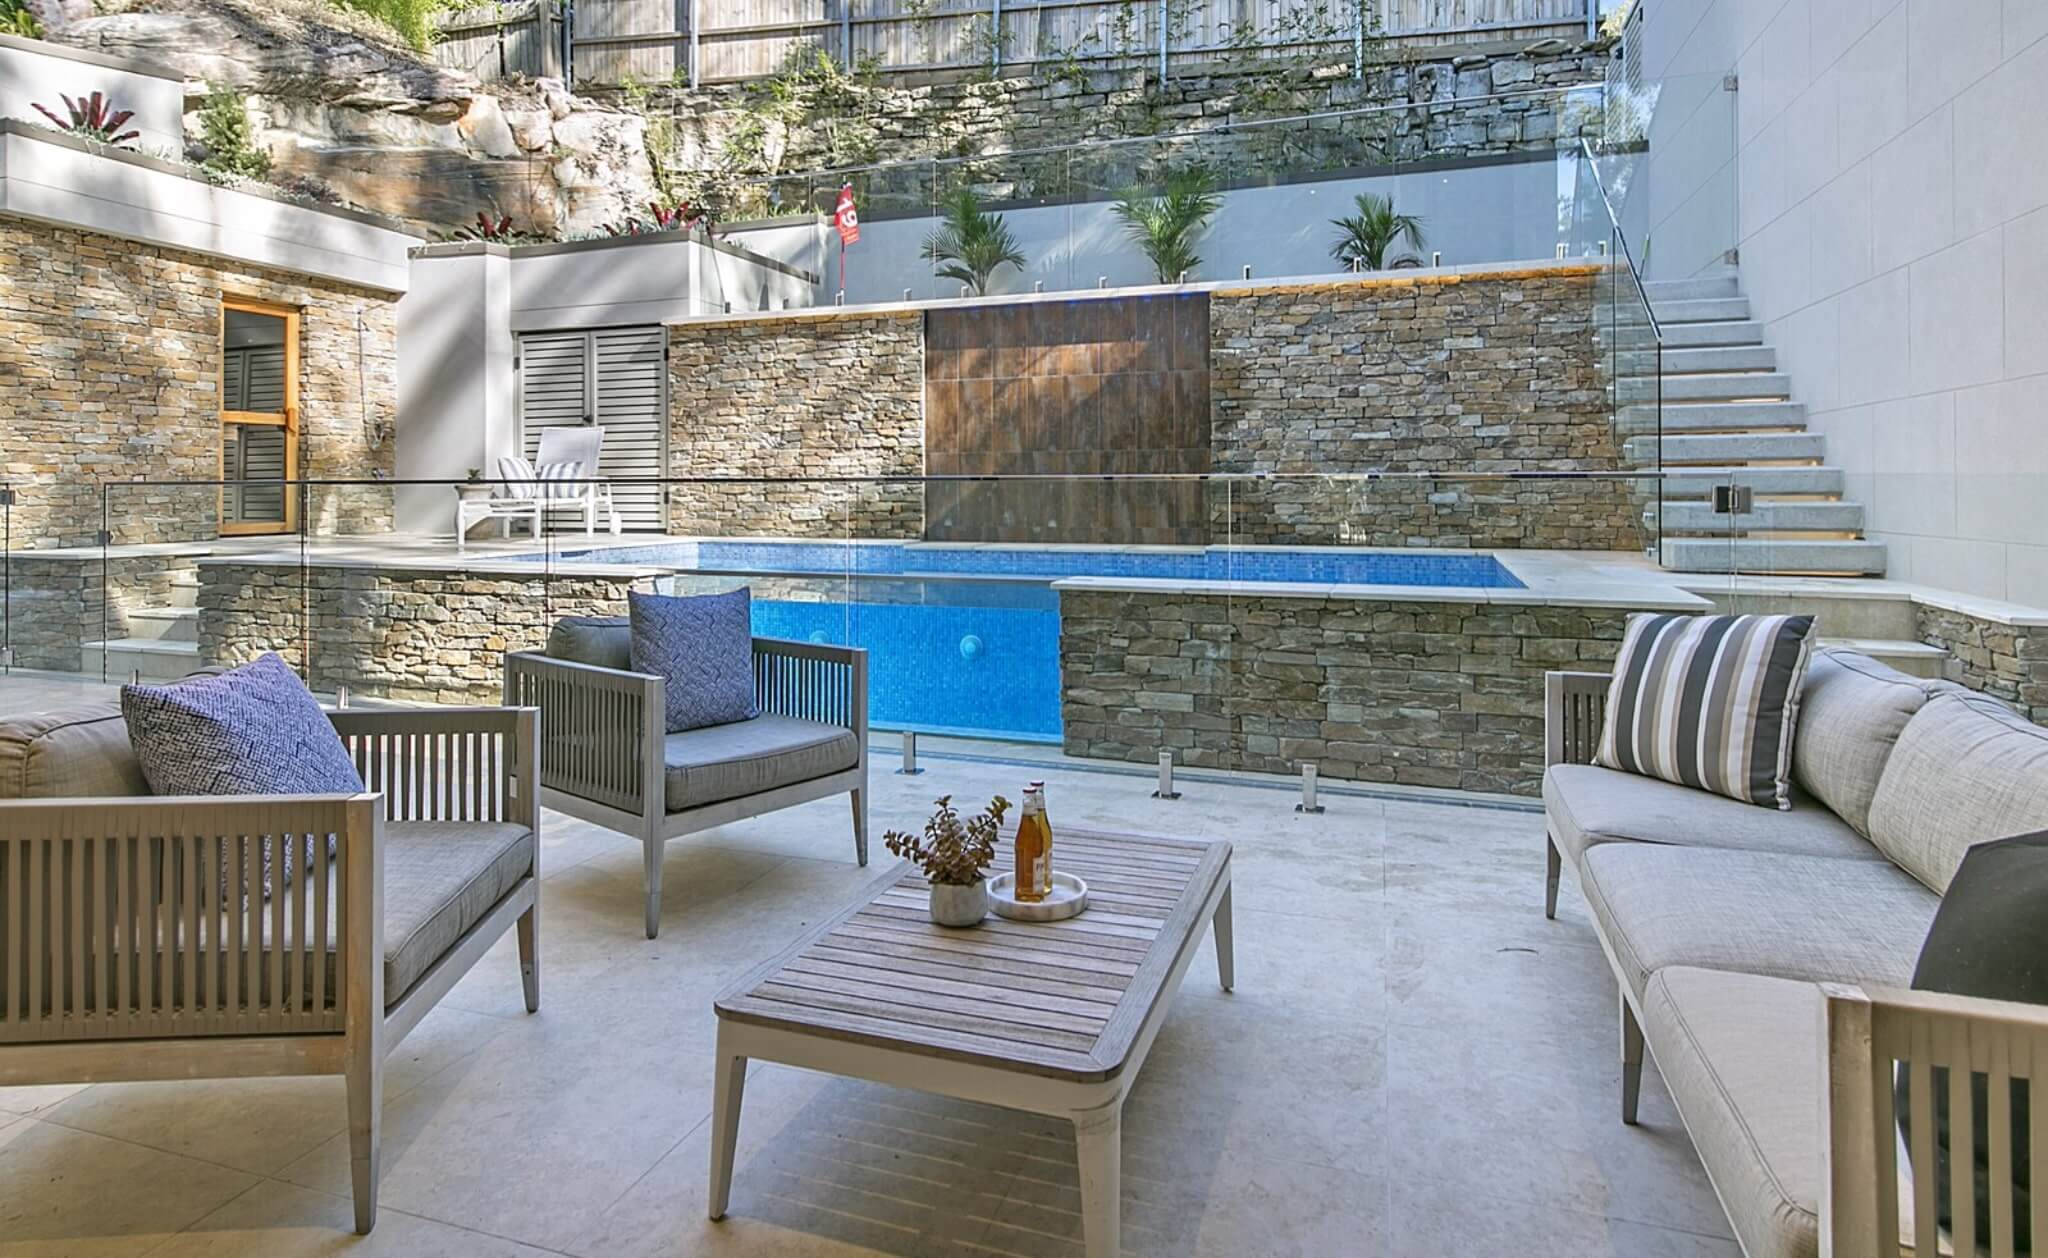 residential landscape designs using appin pavers in outdoor entertainment area with stone featured wall